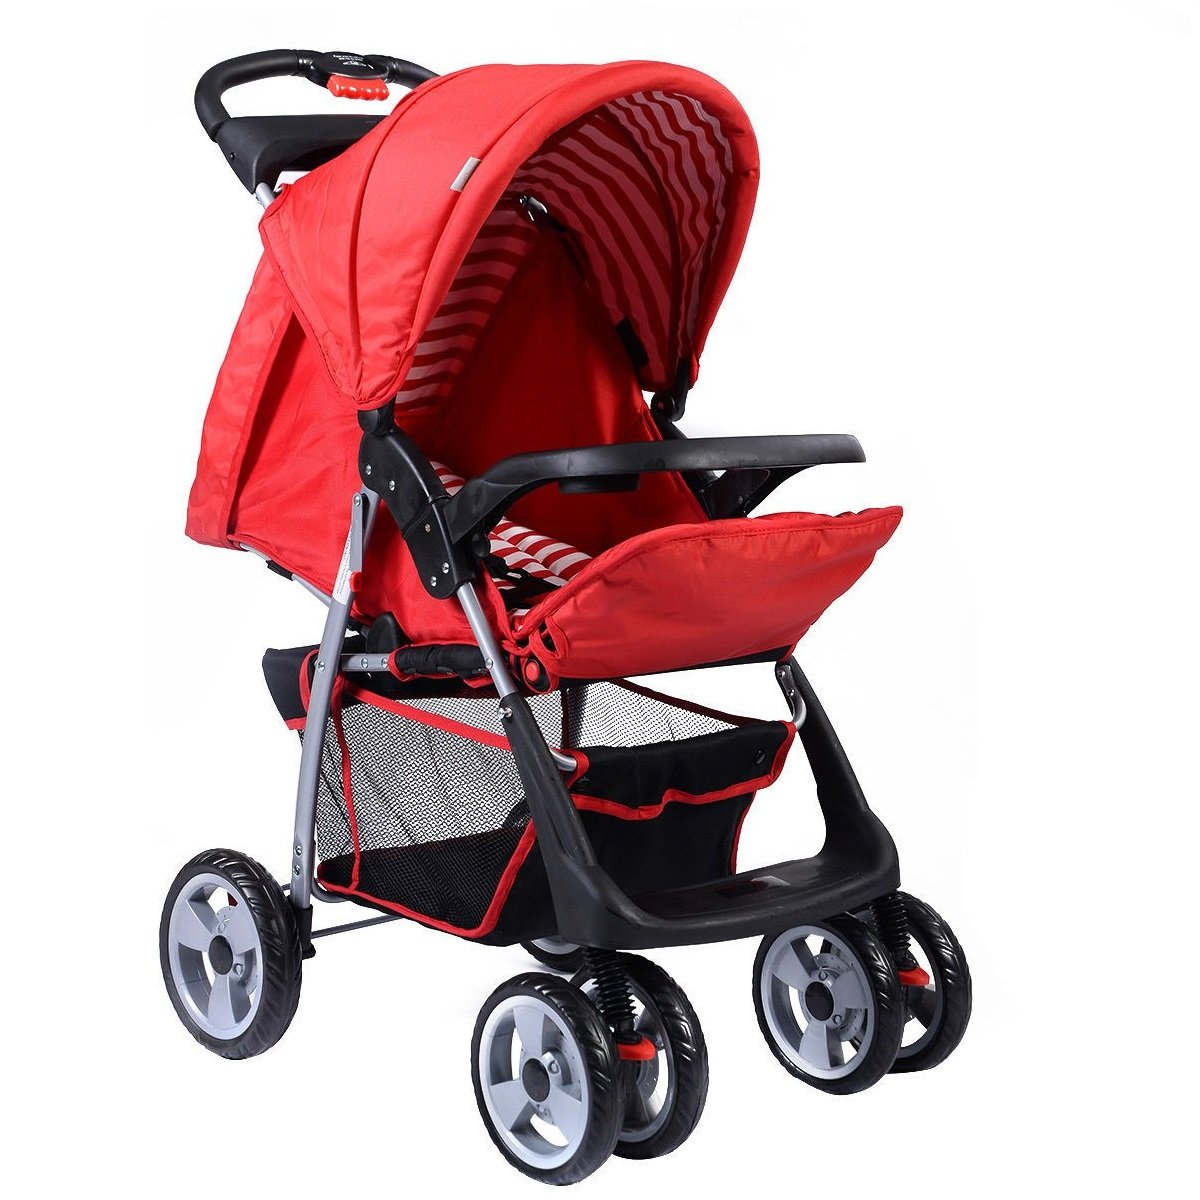 Travel Stroller Kids Foldable Heavy Duty Frame Comfortable Red Oxford MD Group